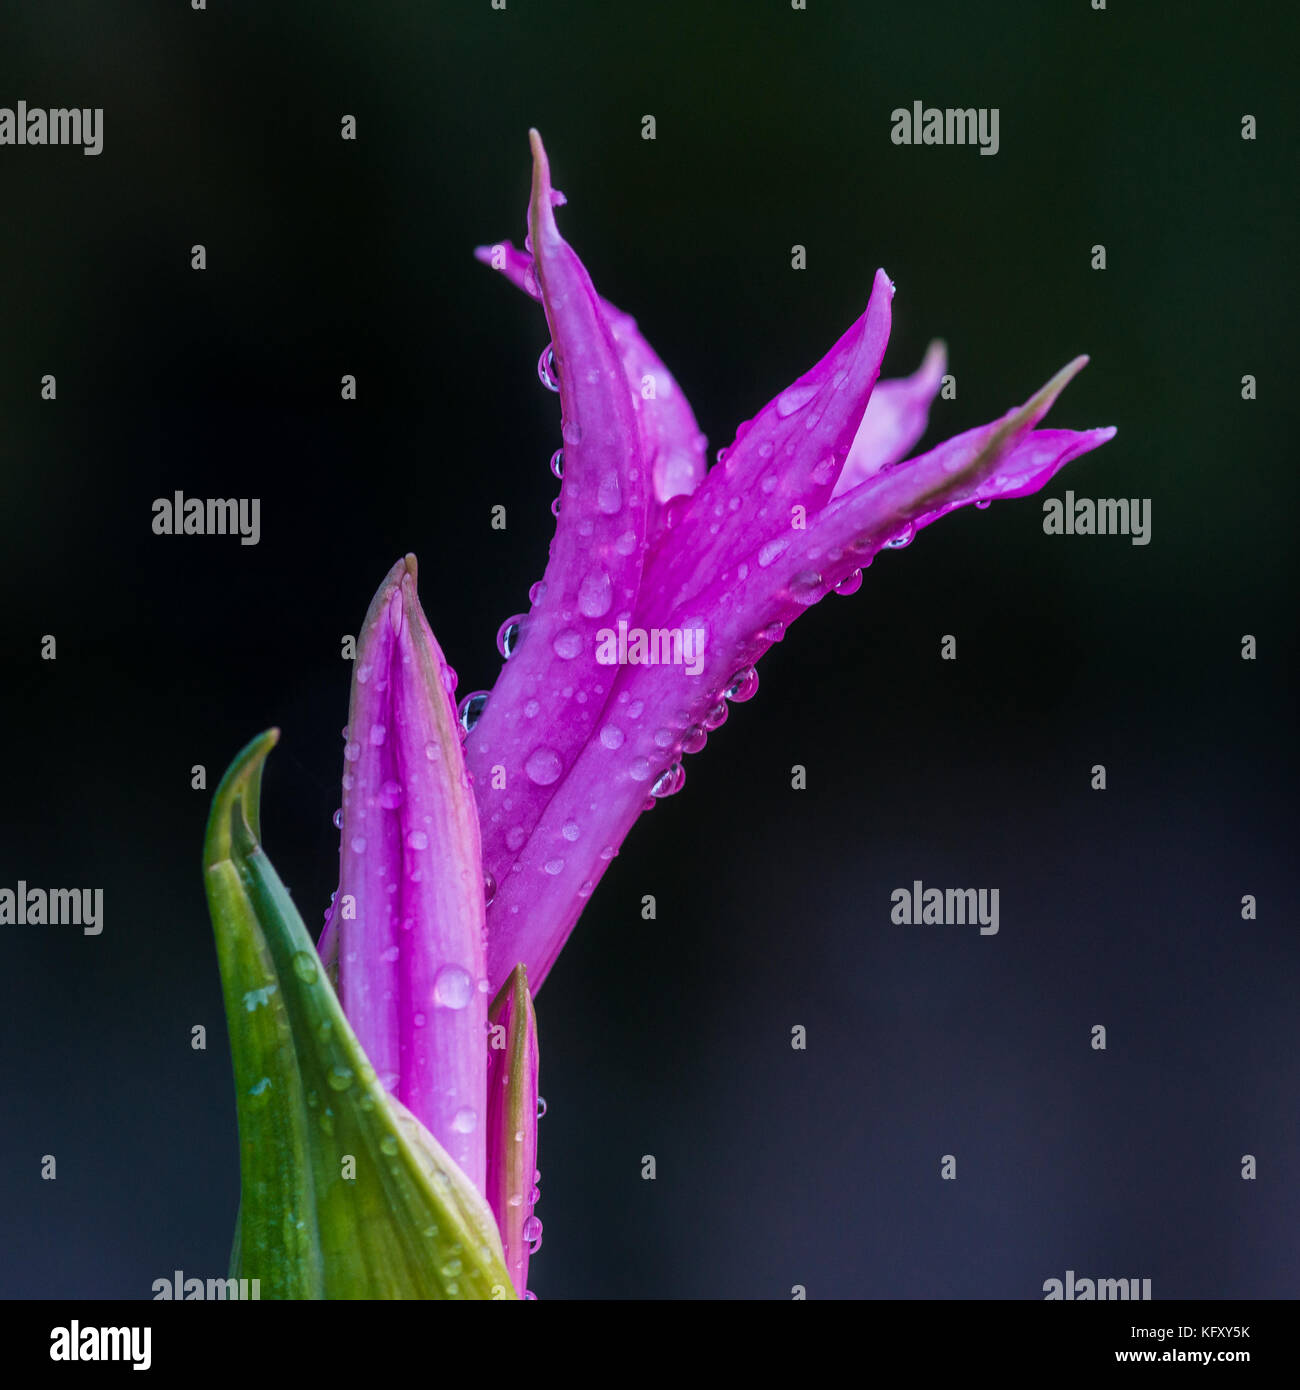 A macro shot of a pink nerine bowdenii bloom opening up. - Stock Image